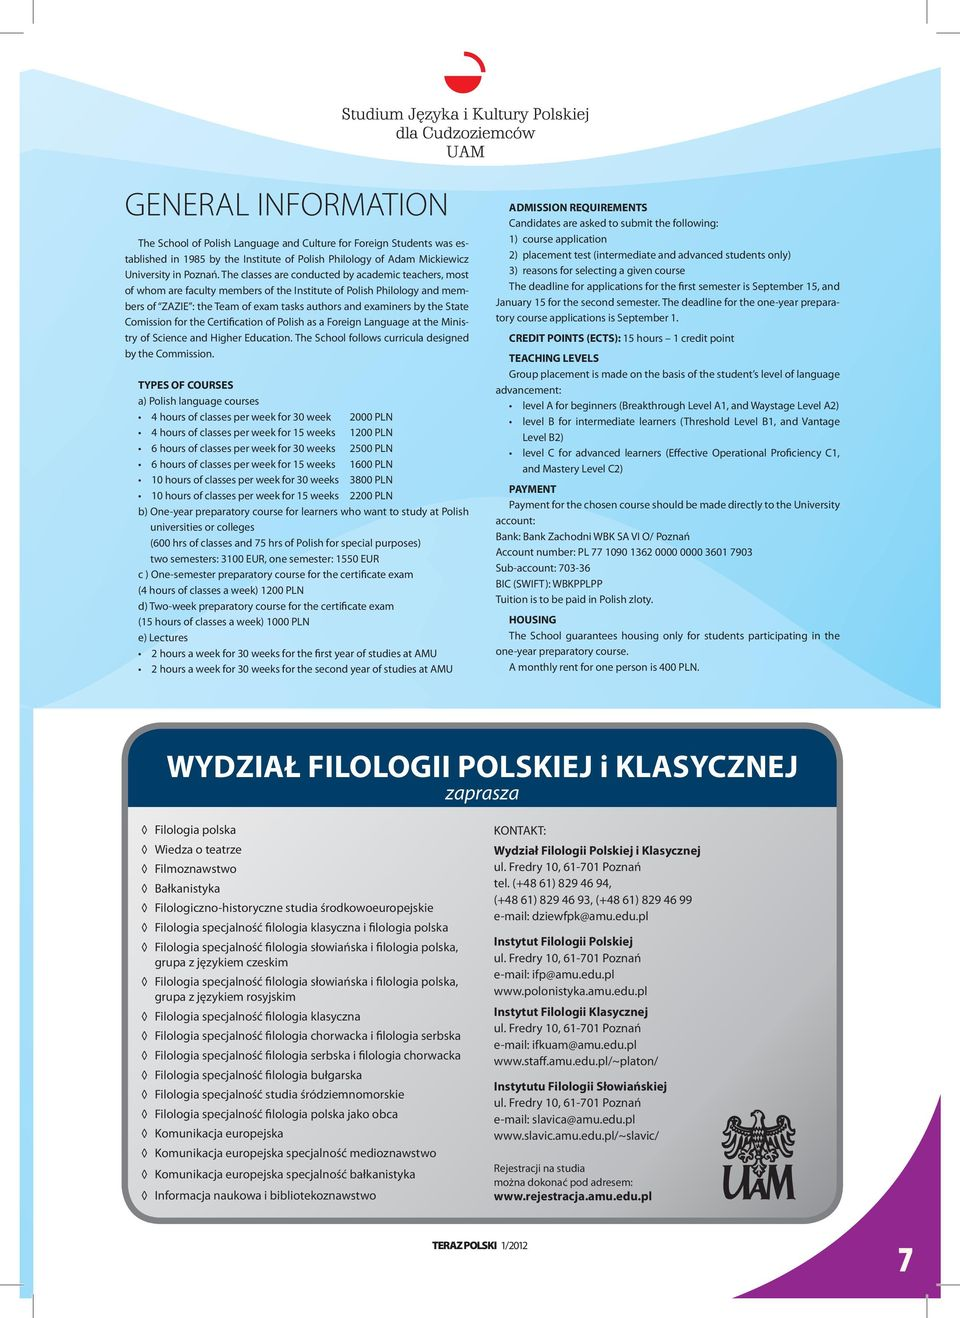 Comission for the Certification of Polish as a Foreign language at the Ministry of Science and Higher education. The School follows curricula designed by the Commission.